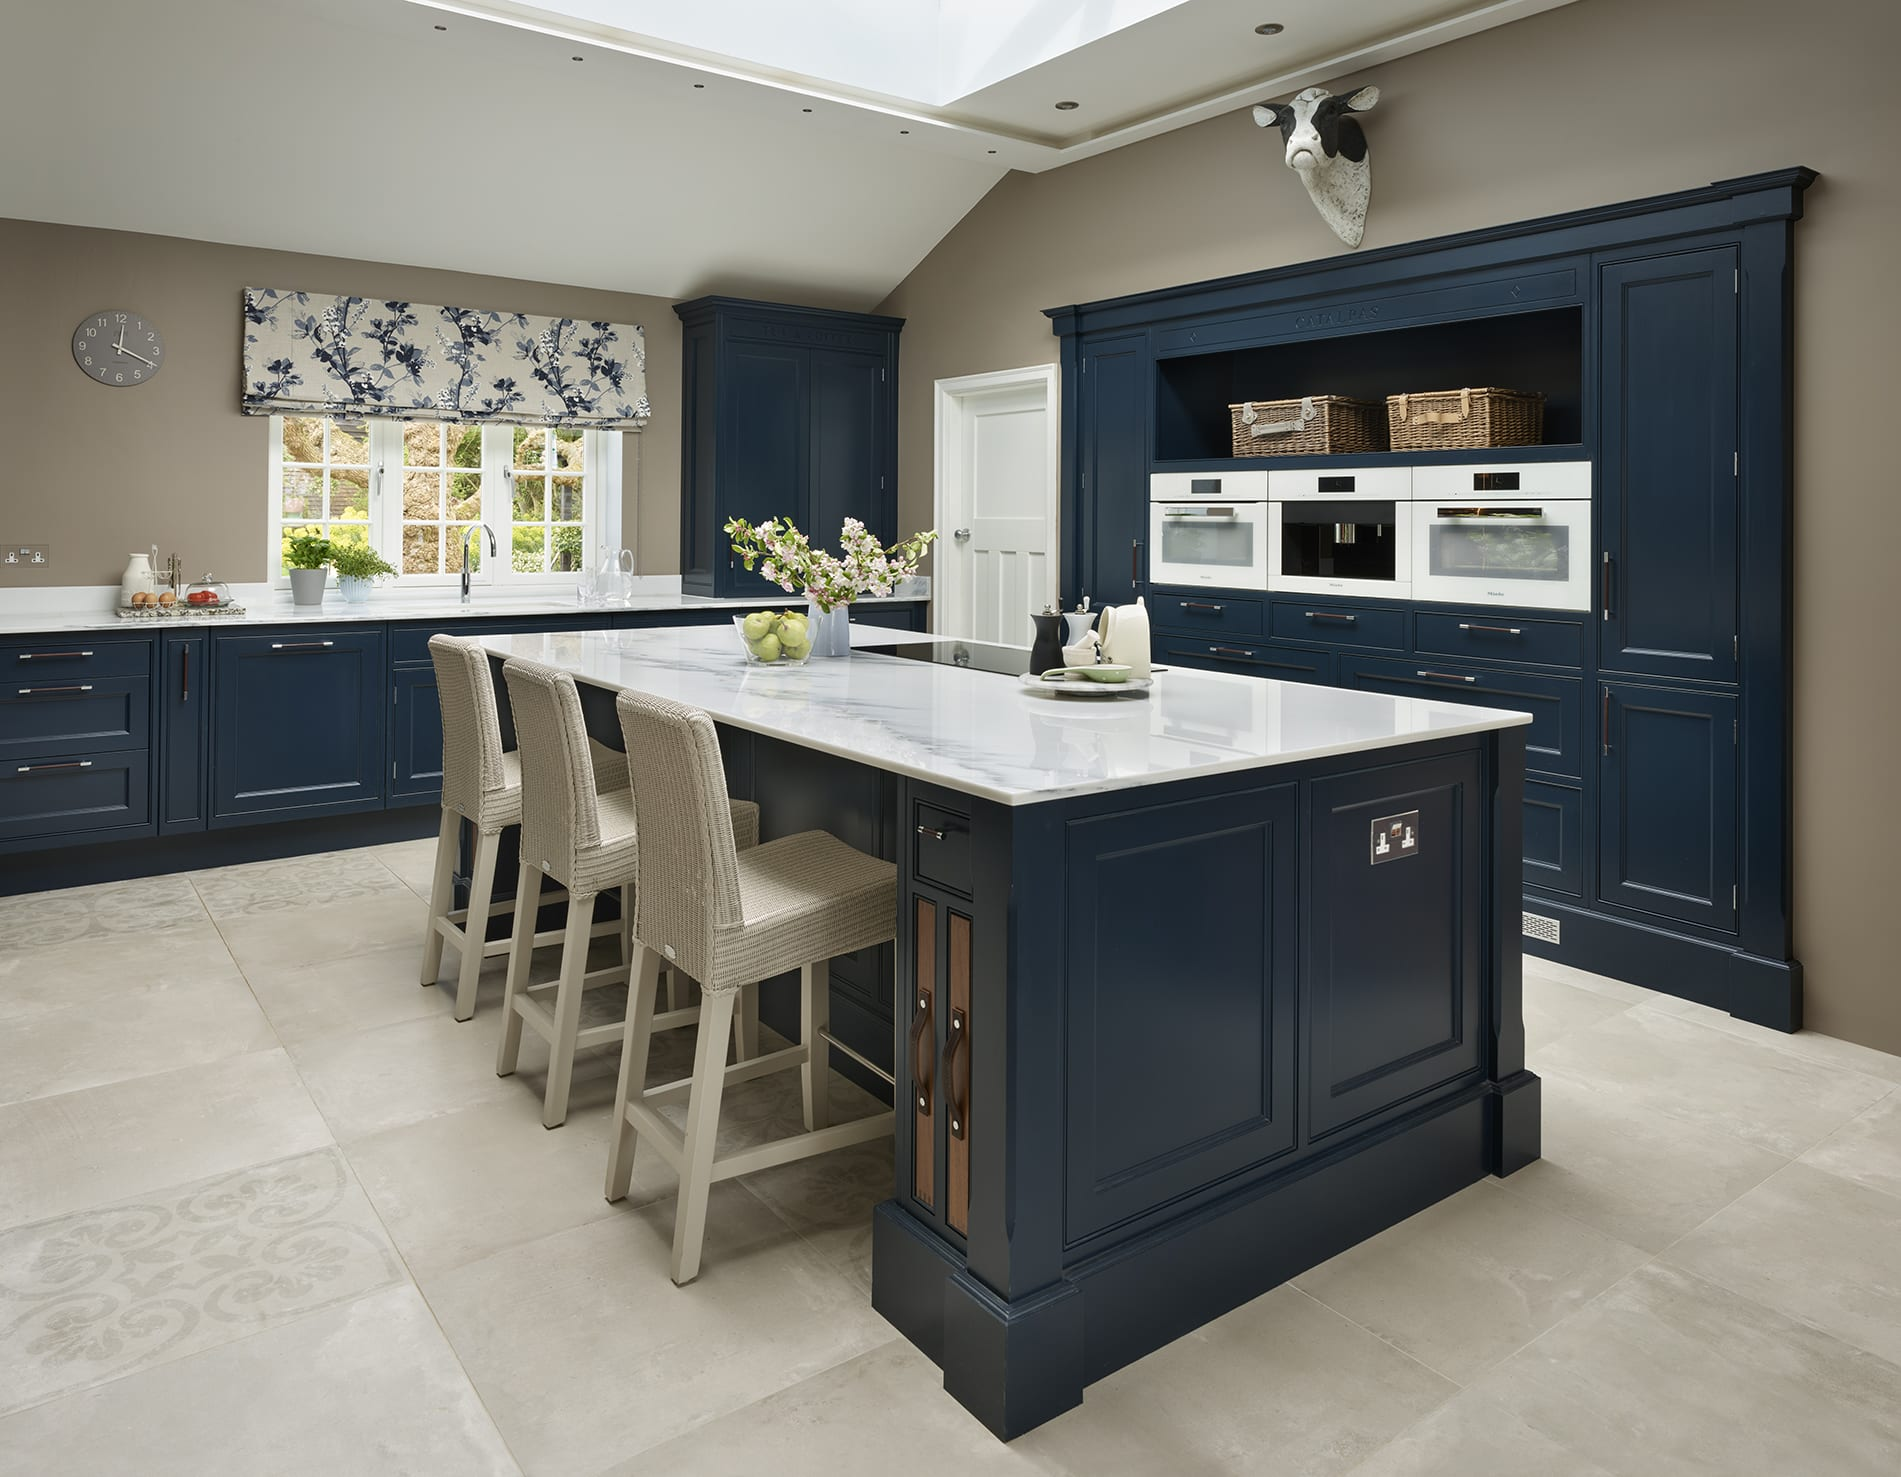 Houzz 9 Kitchen Trends Report   How Does Davonport Compare